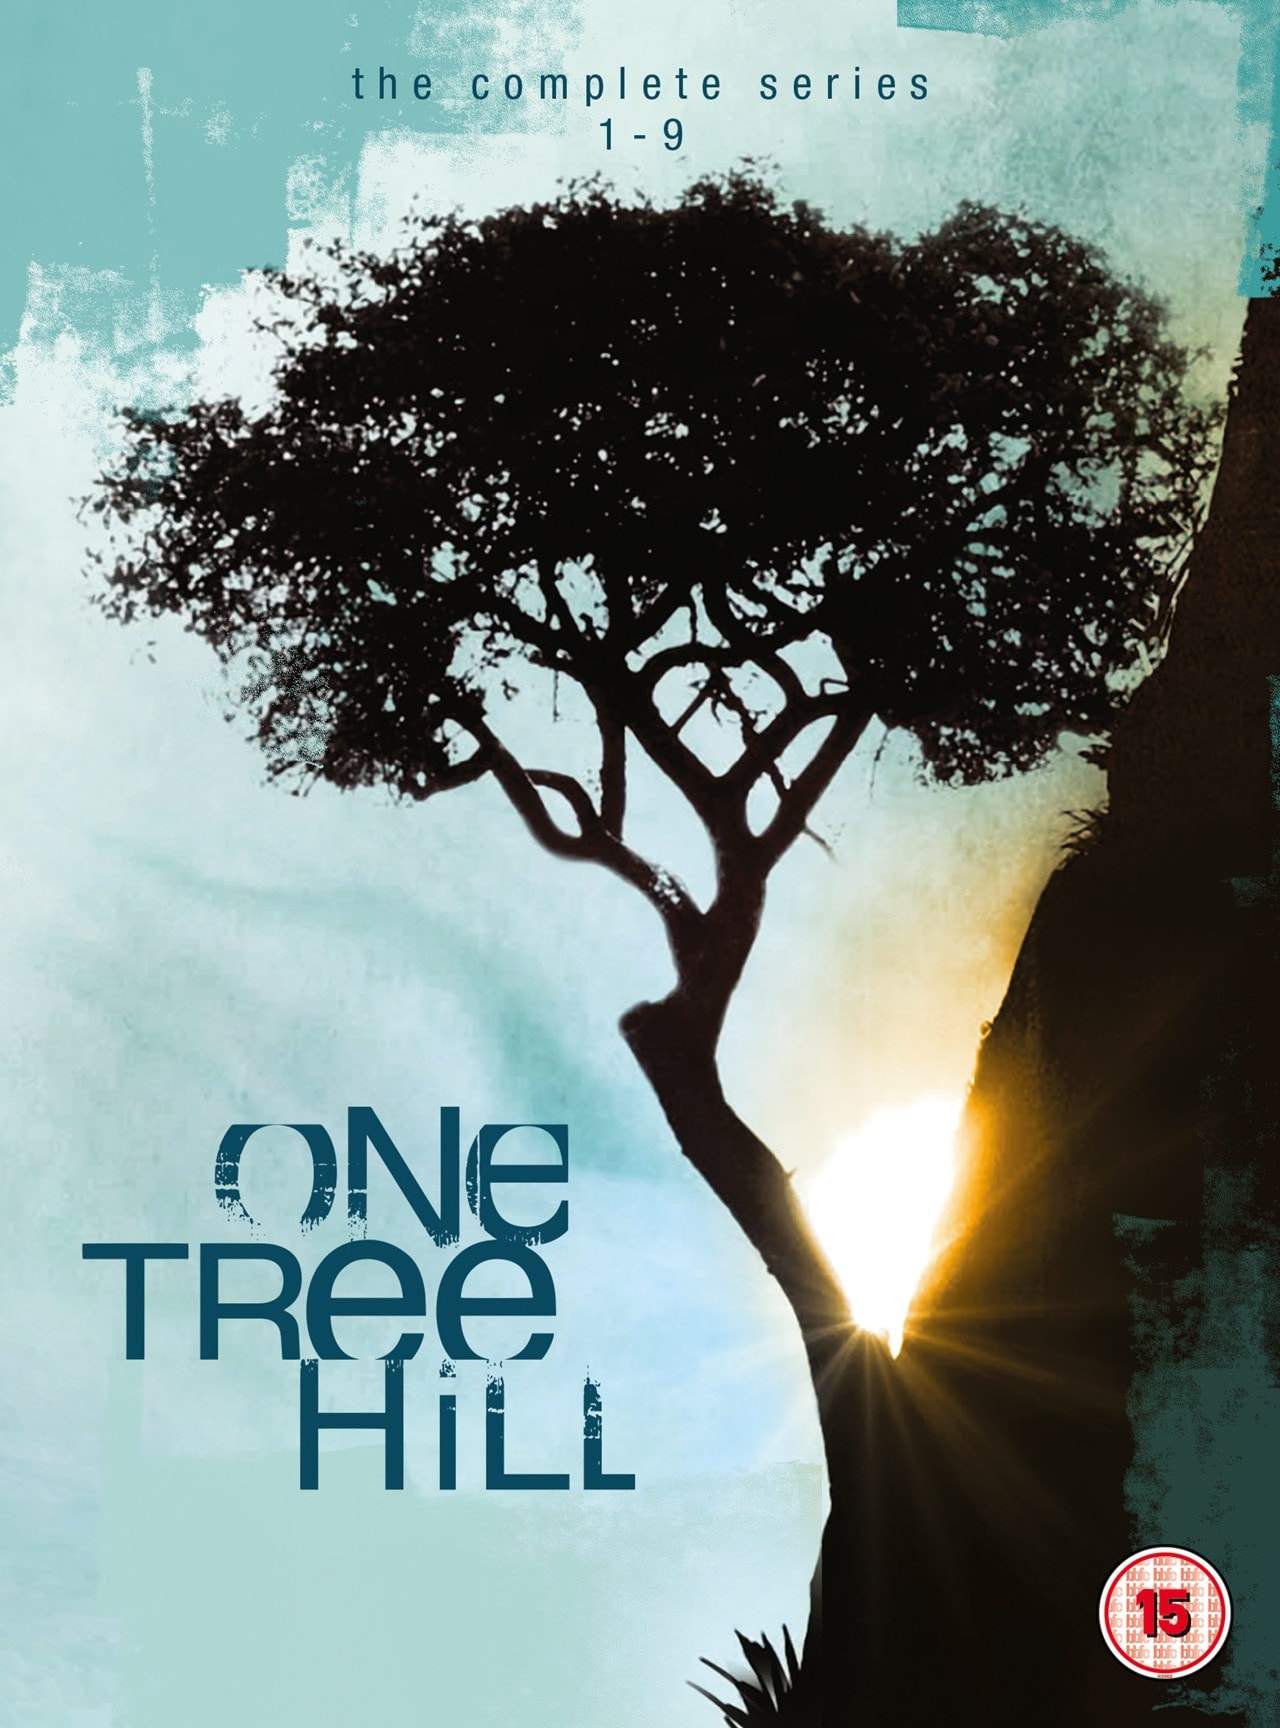 One Tree Hill: The Complete Series 1-9 - 1